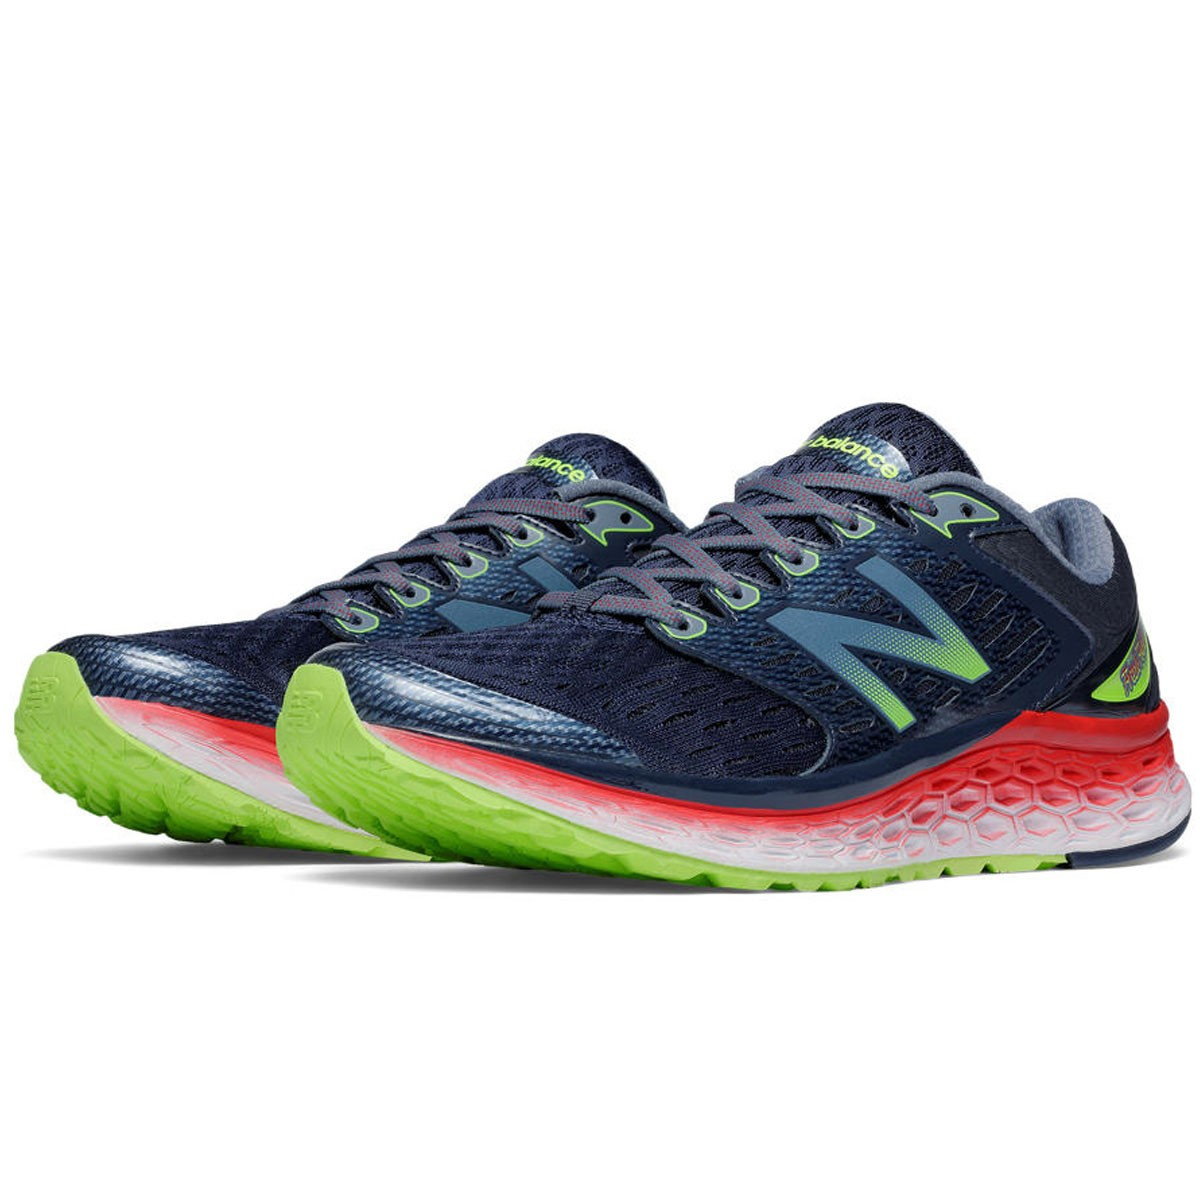 A Guide to Choosing Running Shoes recommendations